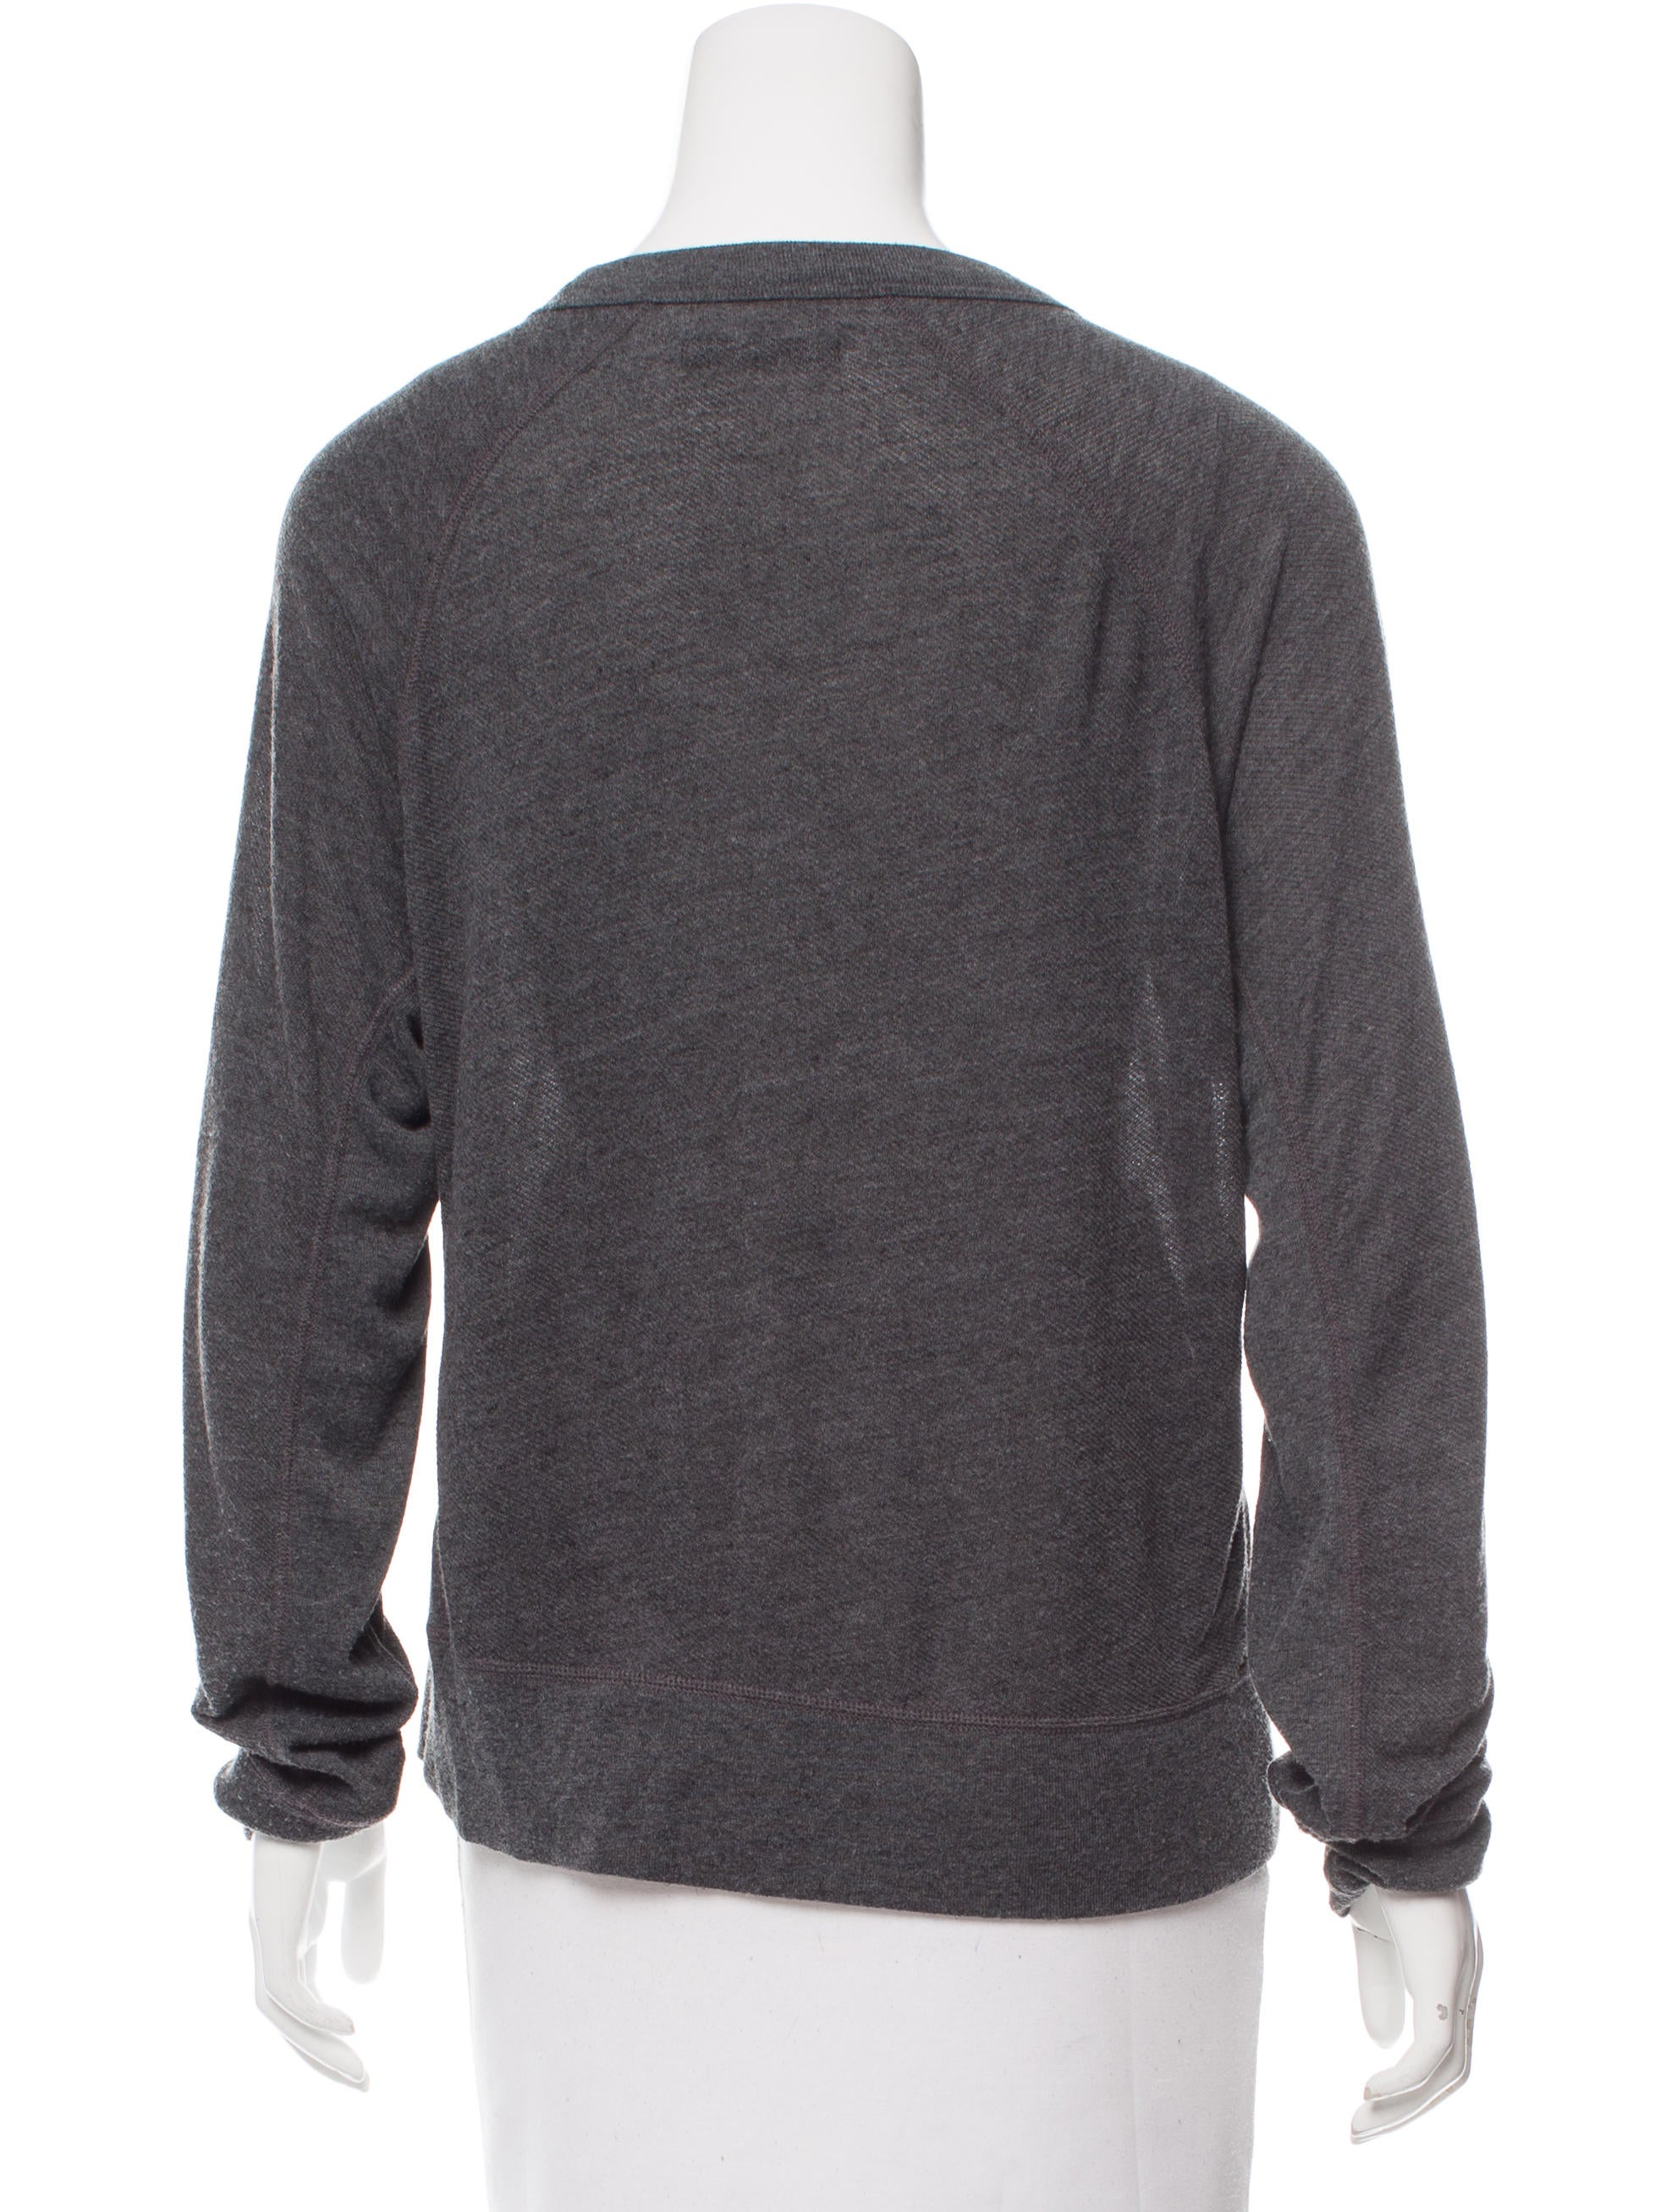 Shop 3/4 length & Long-sleeved Knit tops for women. Find unique styles of womens long sleeve tops, 3/4 sleeve and ballet sleeve tops in misses sizes.